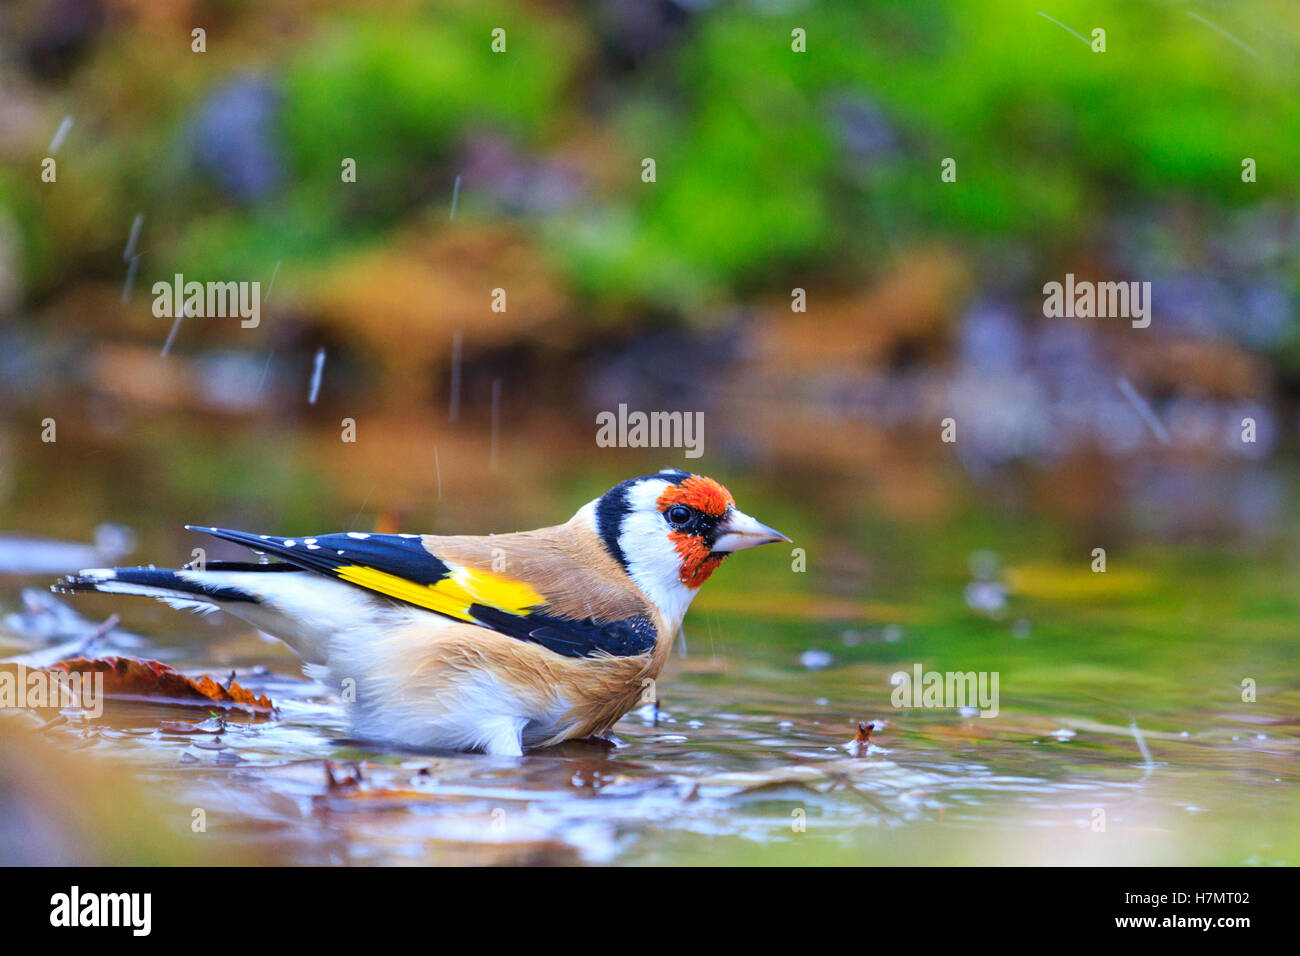 Carduelis carduelis bathing in puddles forest,autumn colored bird, unique moment, - Stock Image